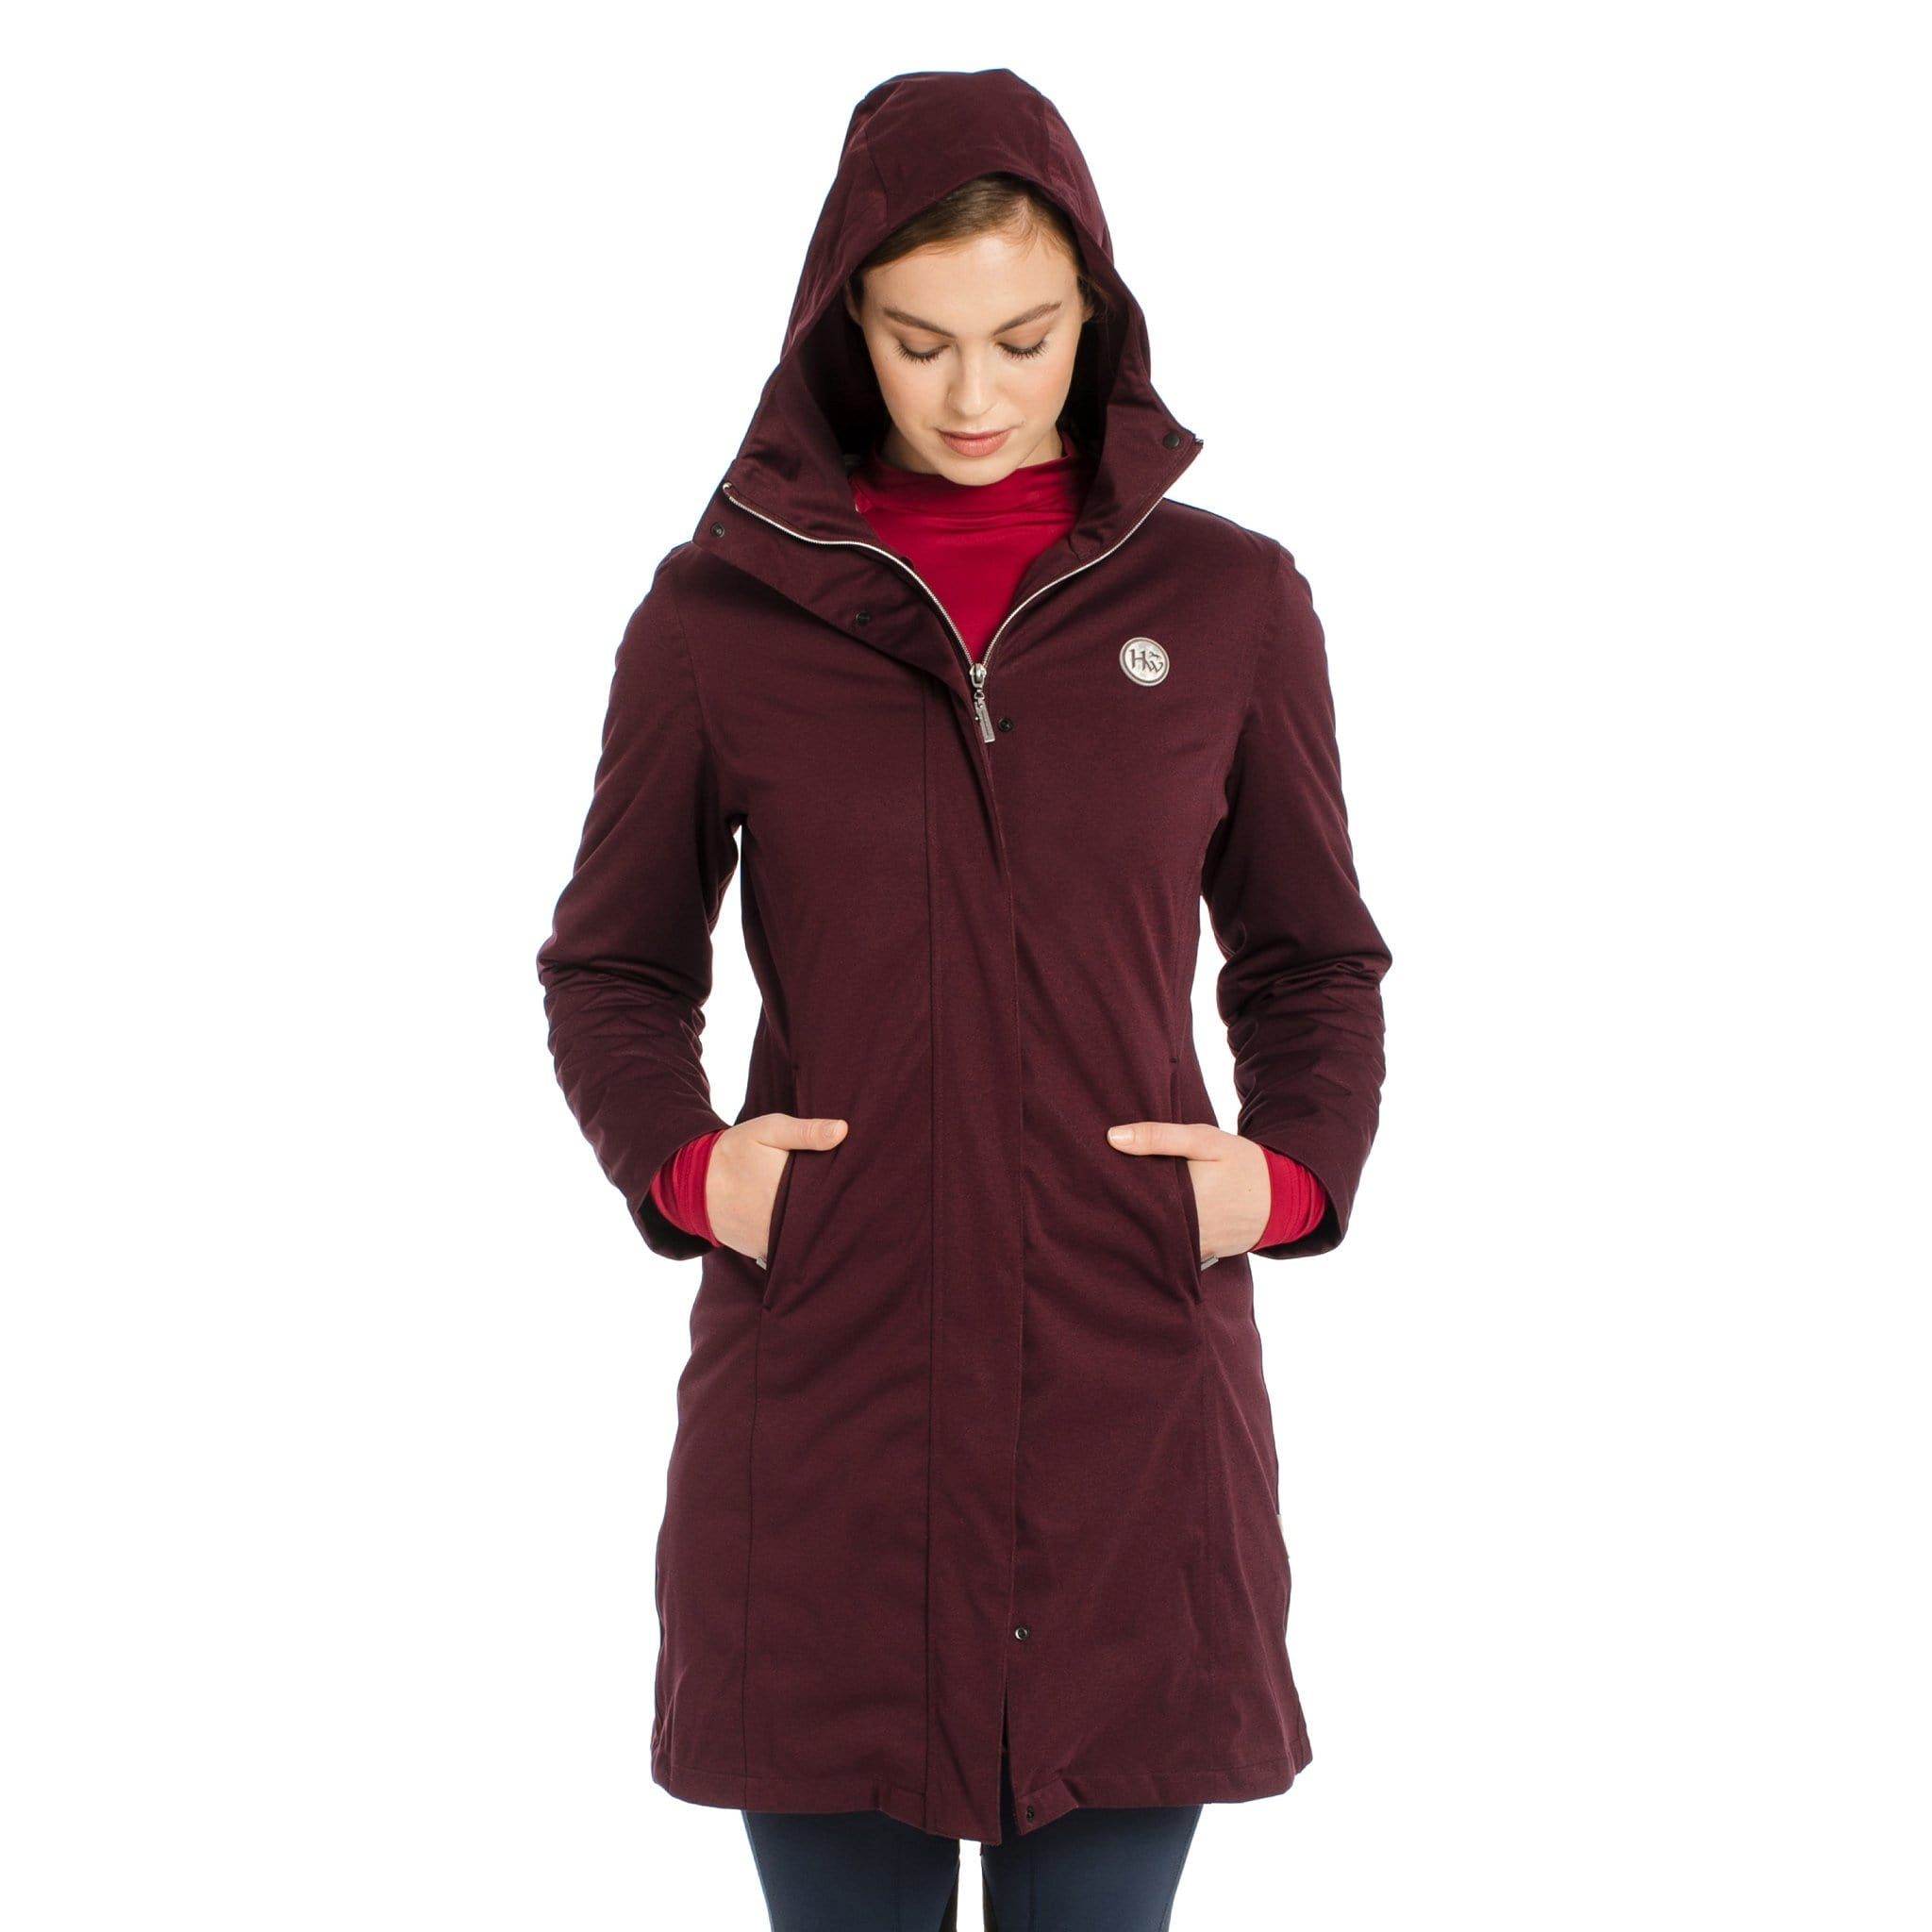 Horseware 3-in-1 Super Technical Coat CAHATX Fig On Model Front View With Hood Up